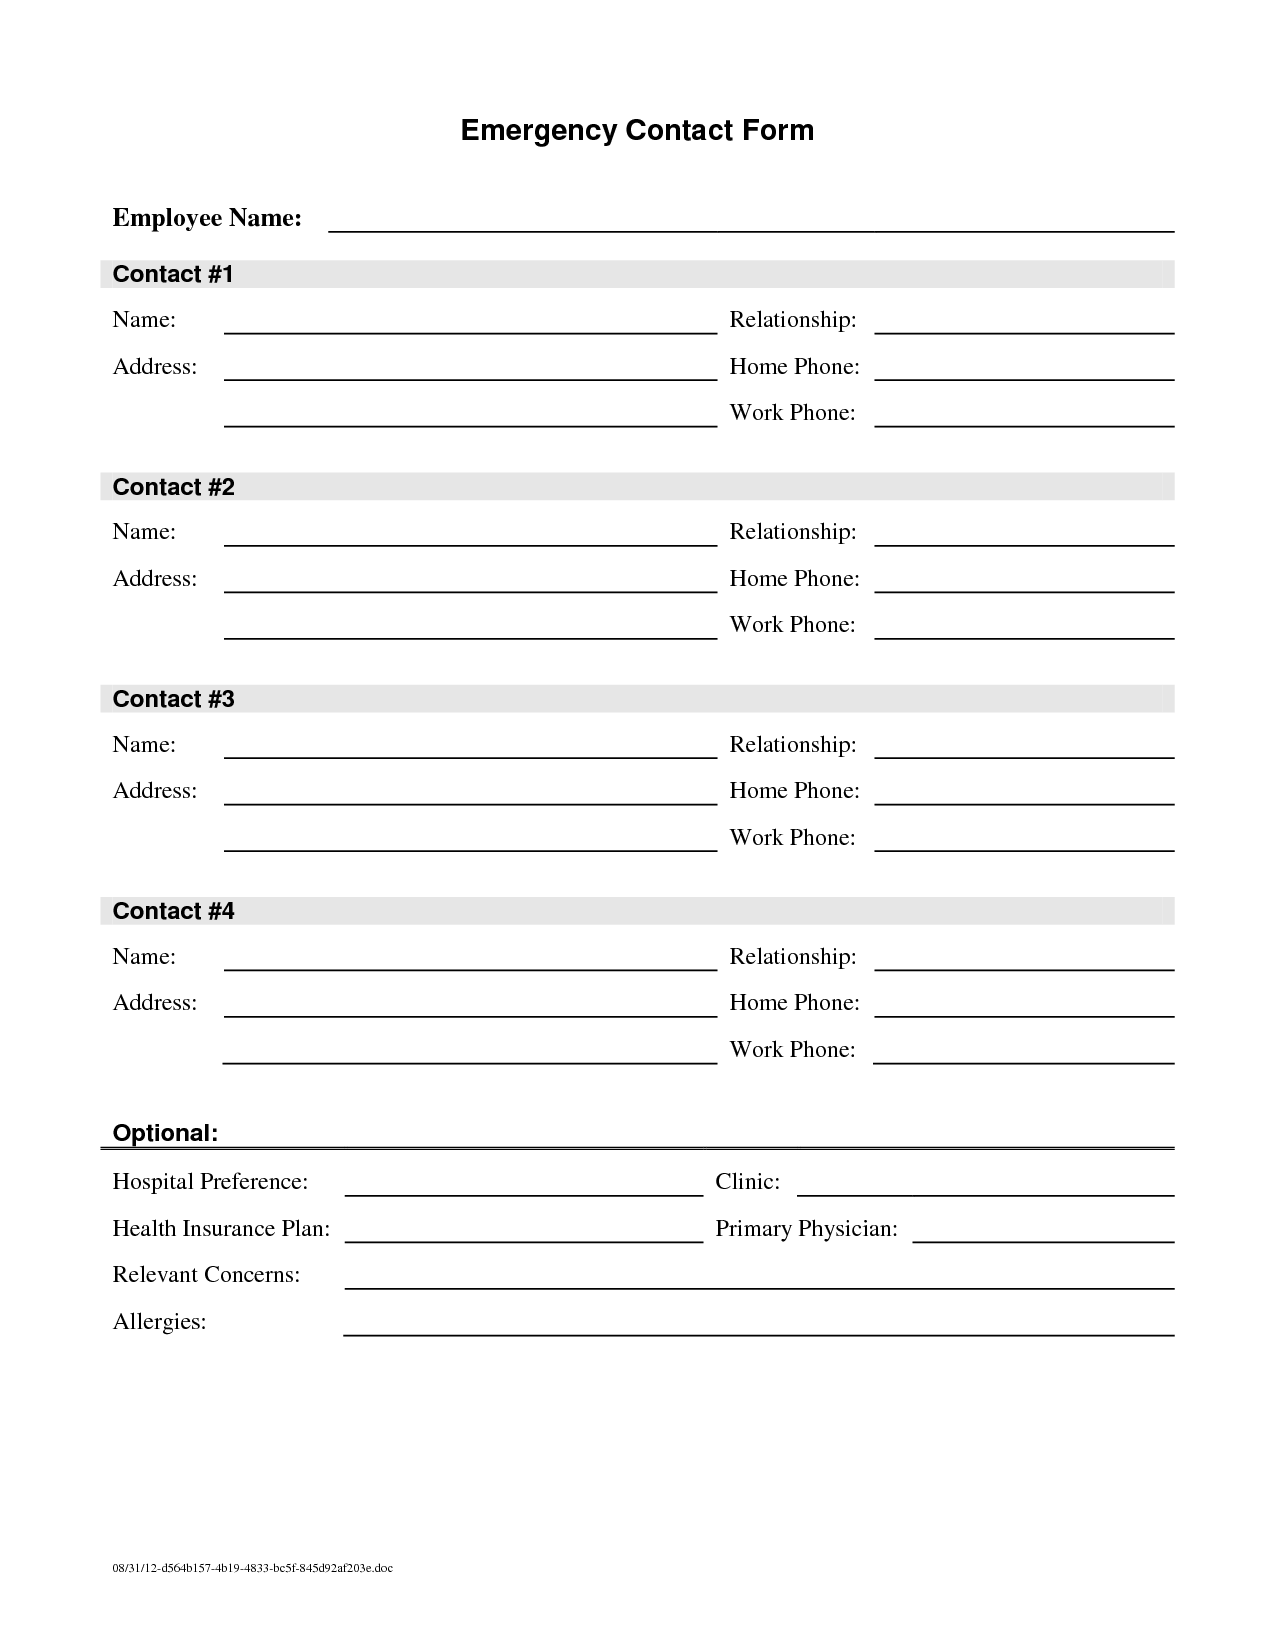 Emergency Contact Form Template – Customer Contact Form Template